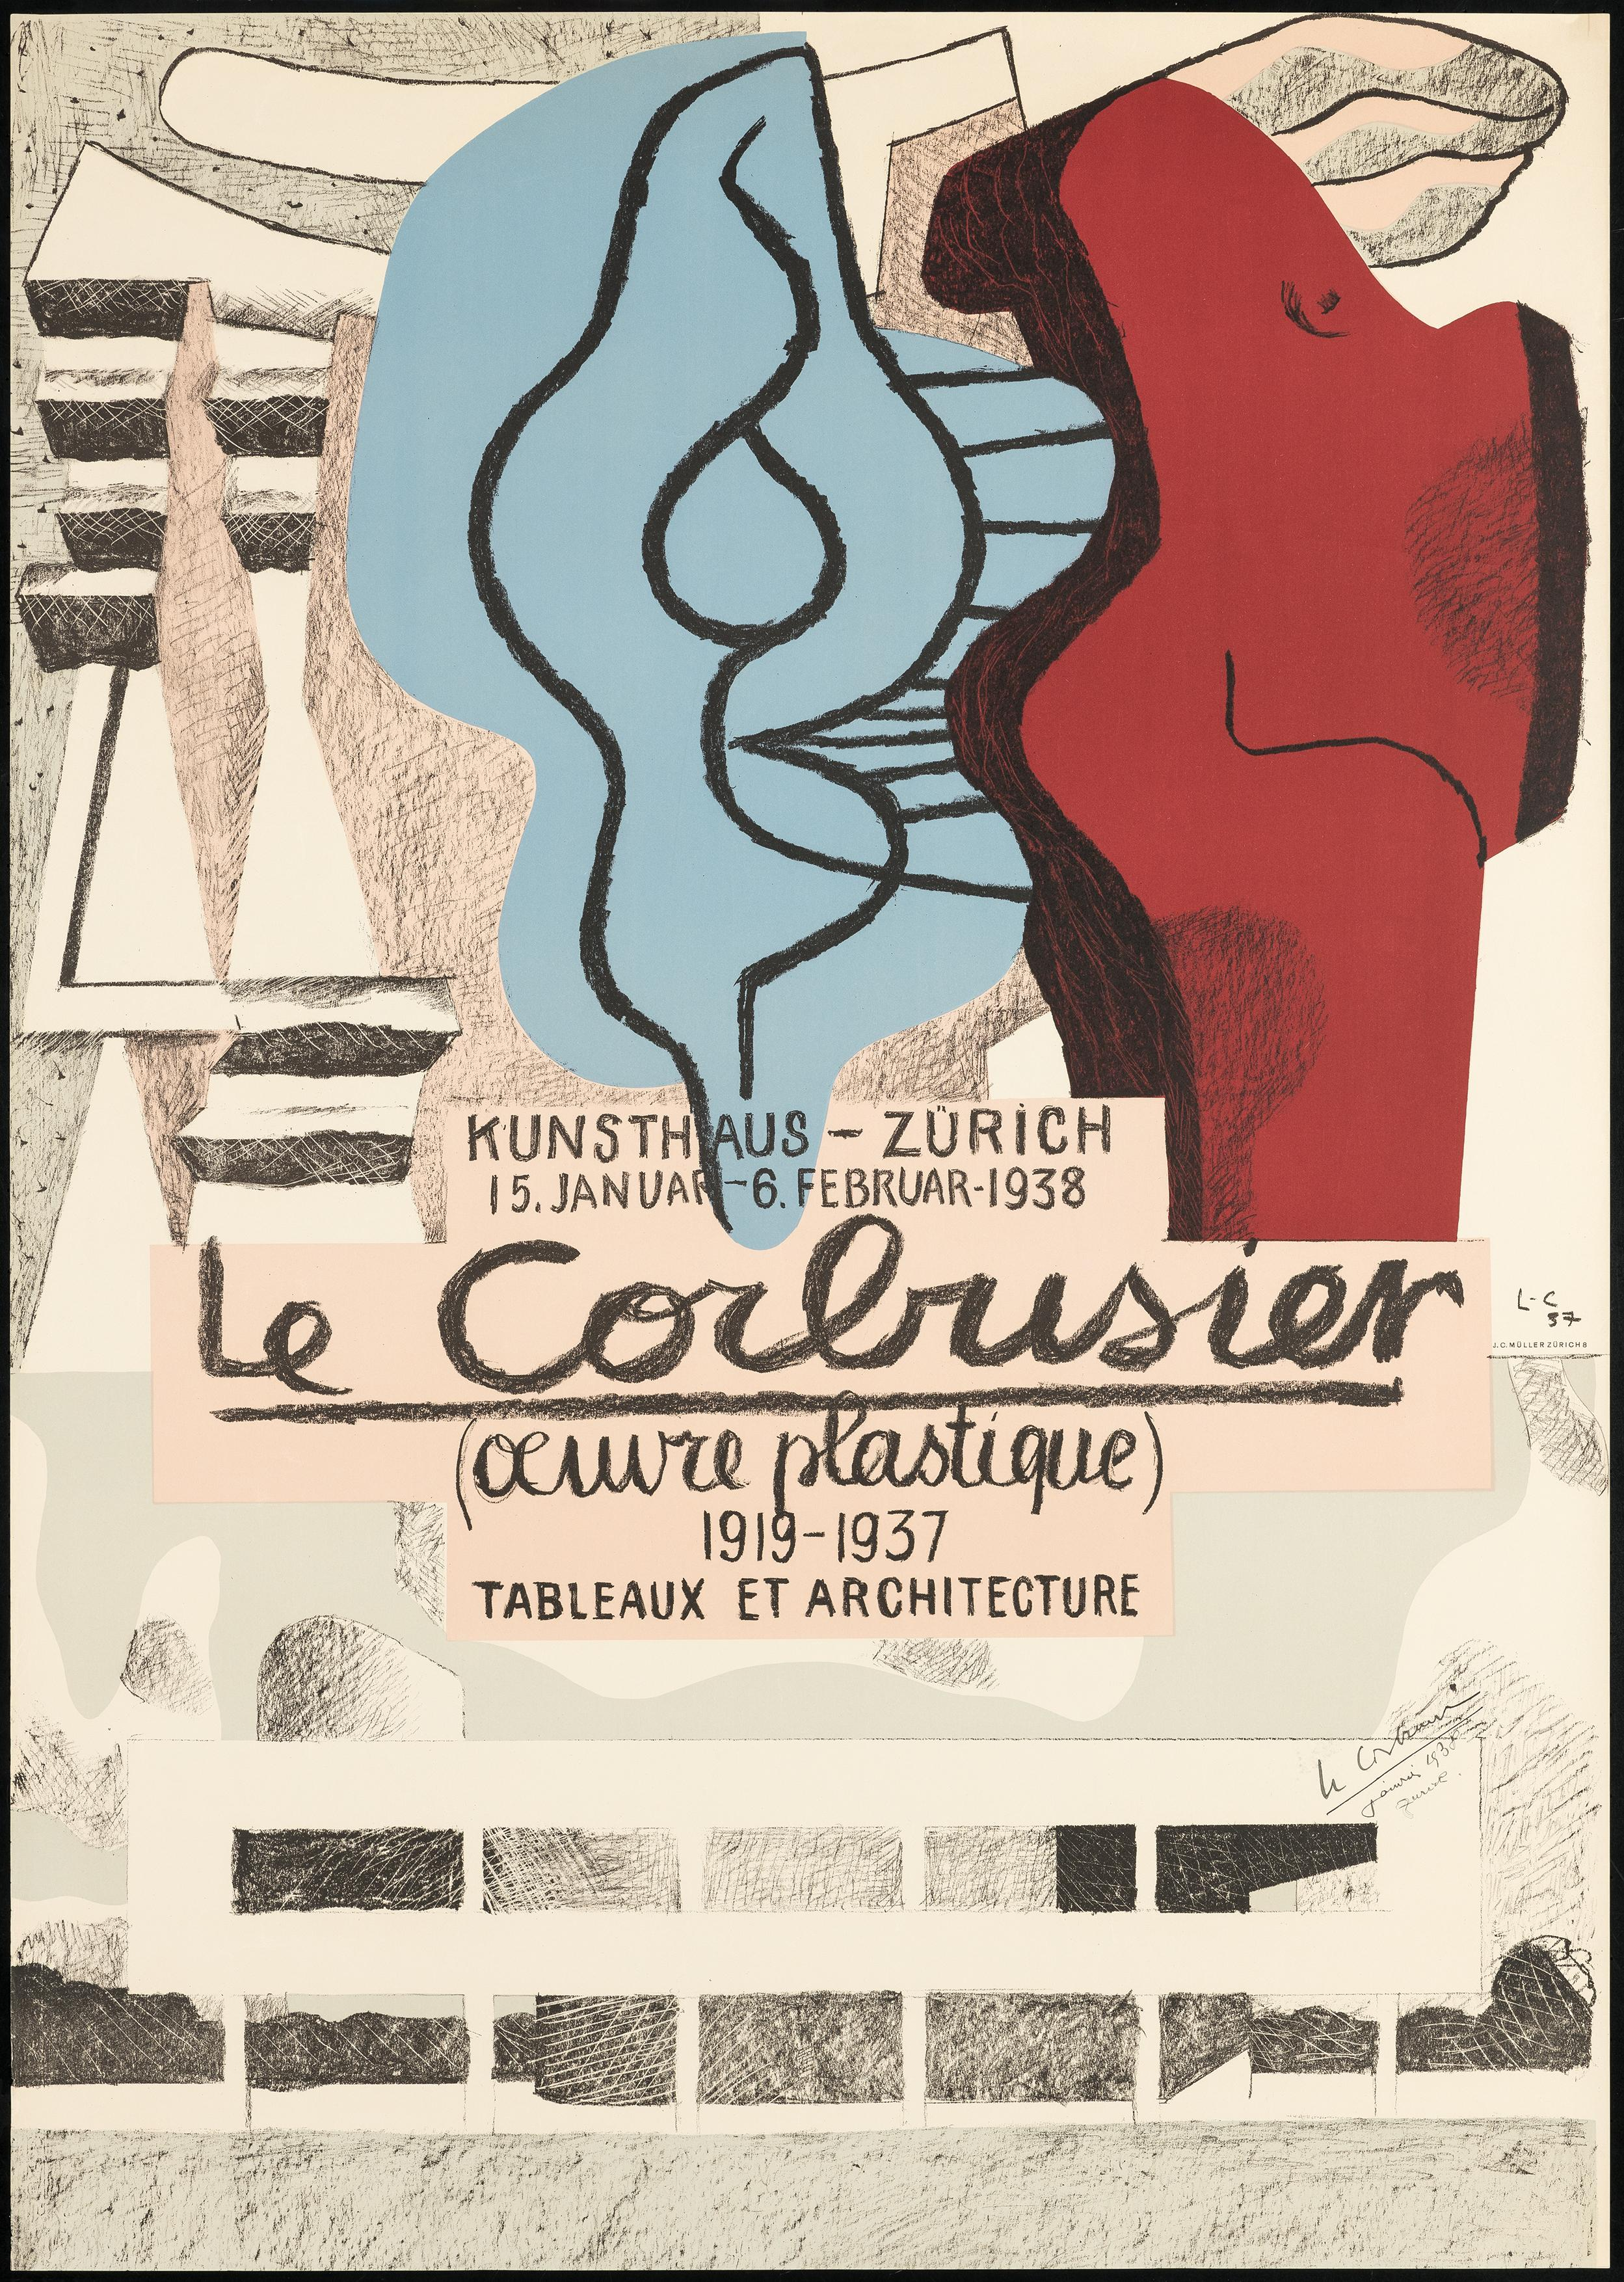 Œuvre Plastique,Kunsthaus Zürich 1938 – lithograph, hand-signed and denoted